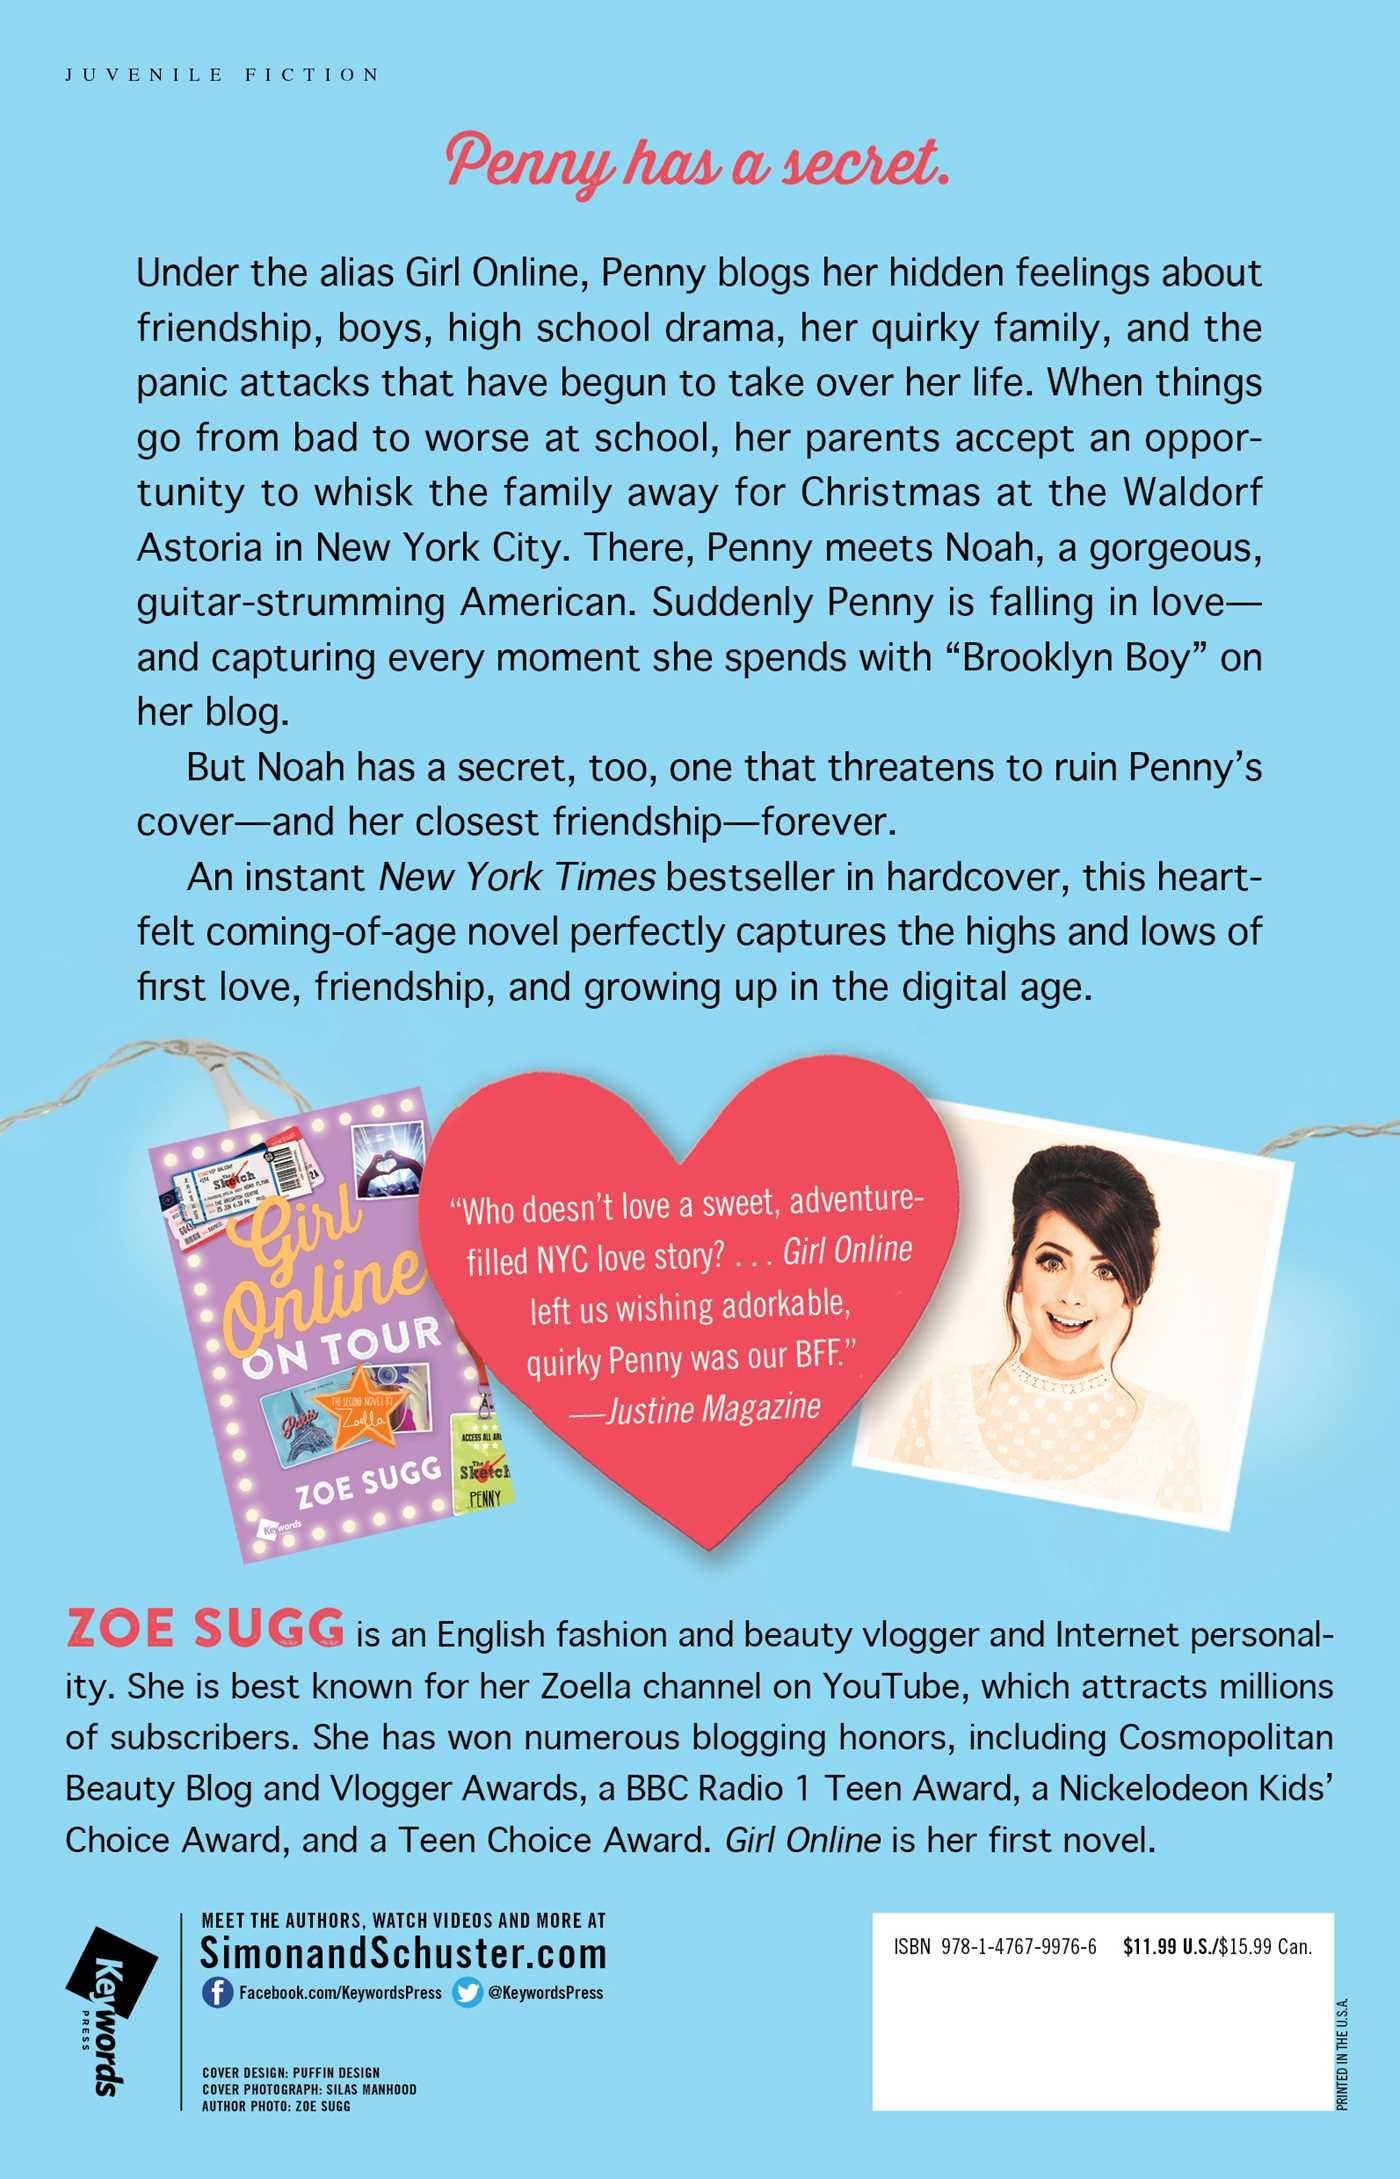 Amazon.com: Girl Online: The First Novel by Zoella (Girl Online ...